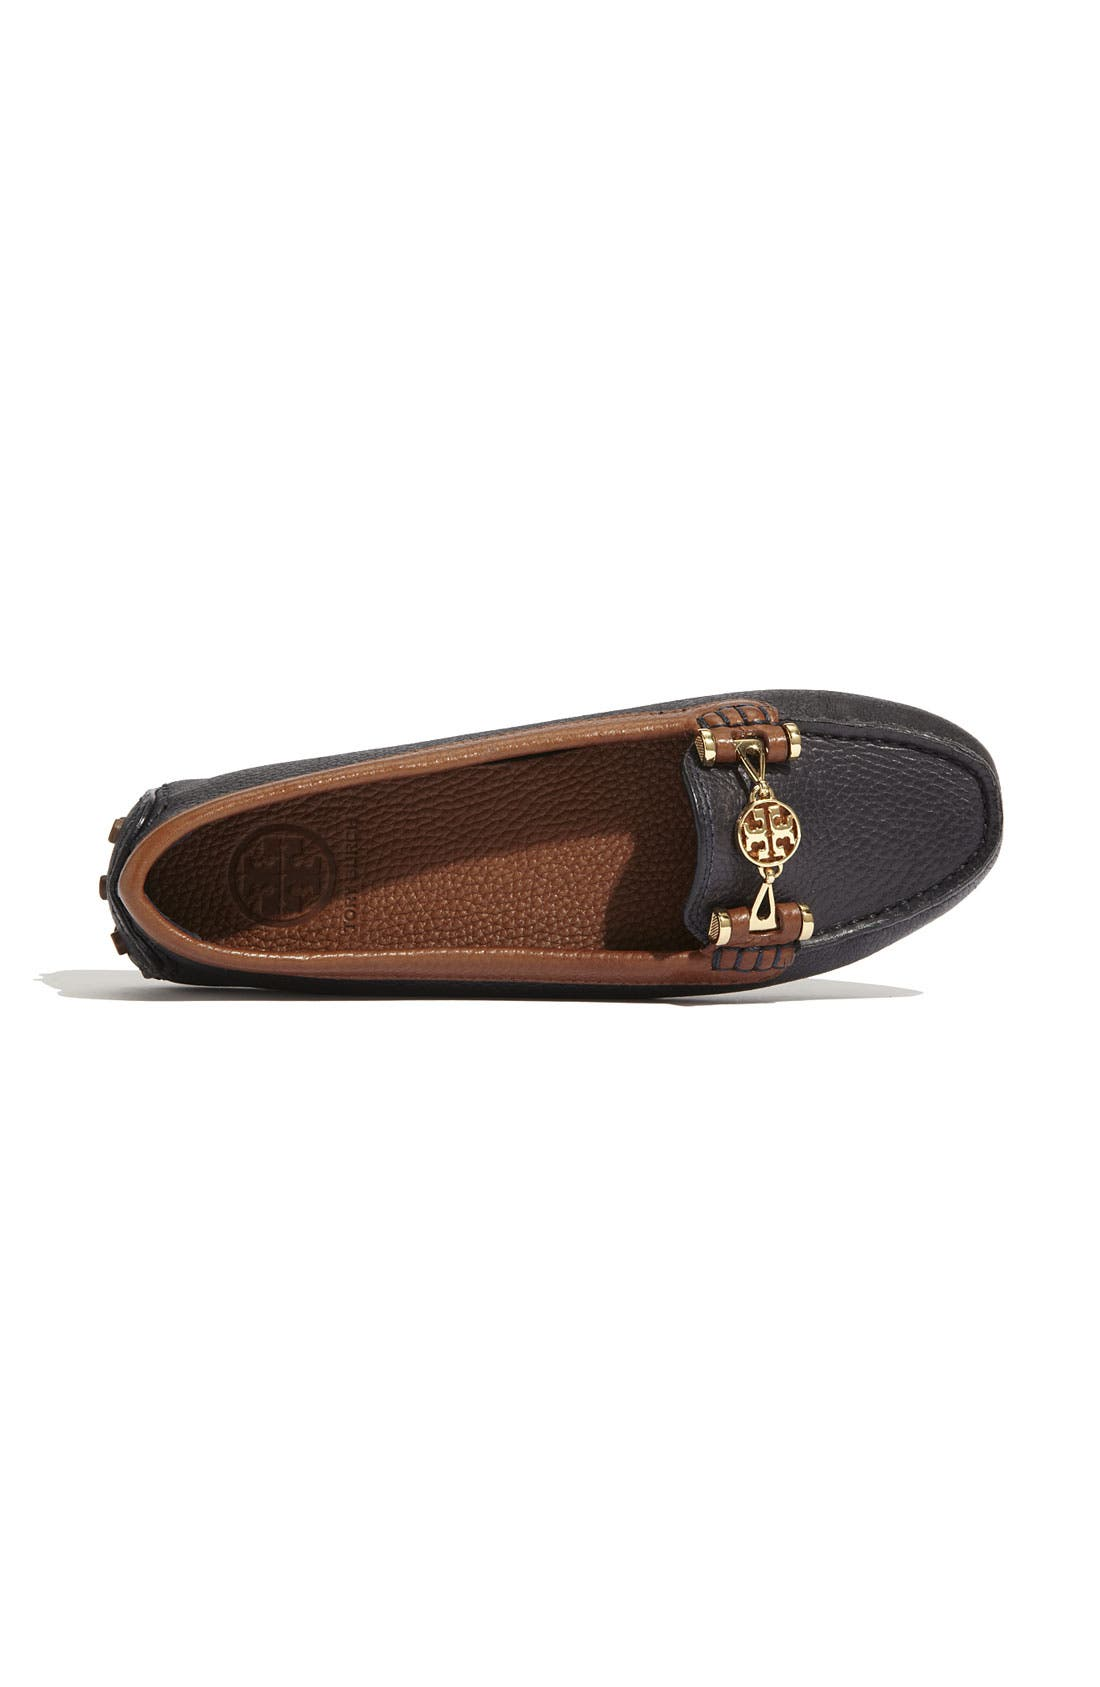 Alternate Image 3  - Tory Burch 'Daria' Driving Moccasin